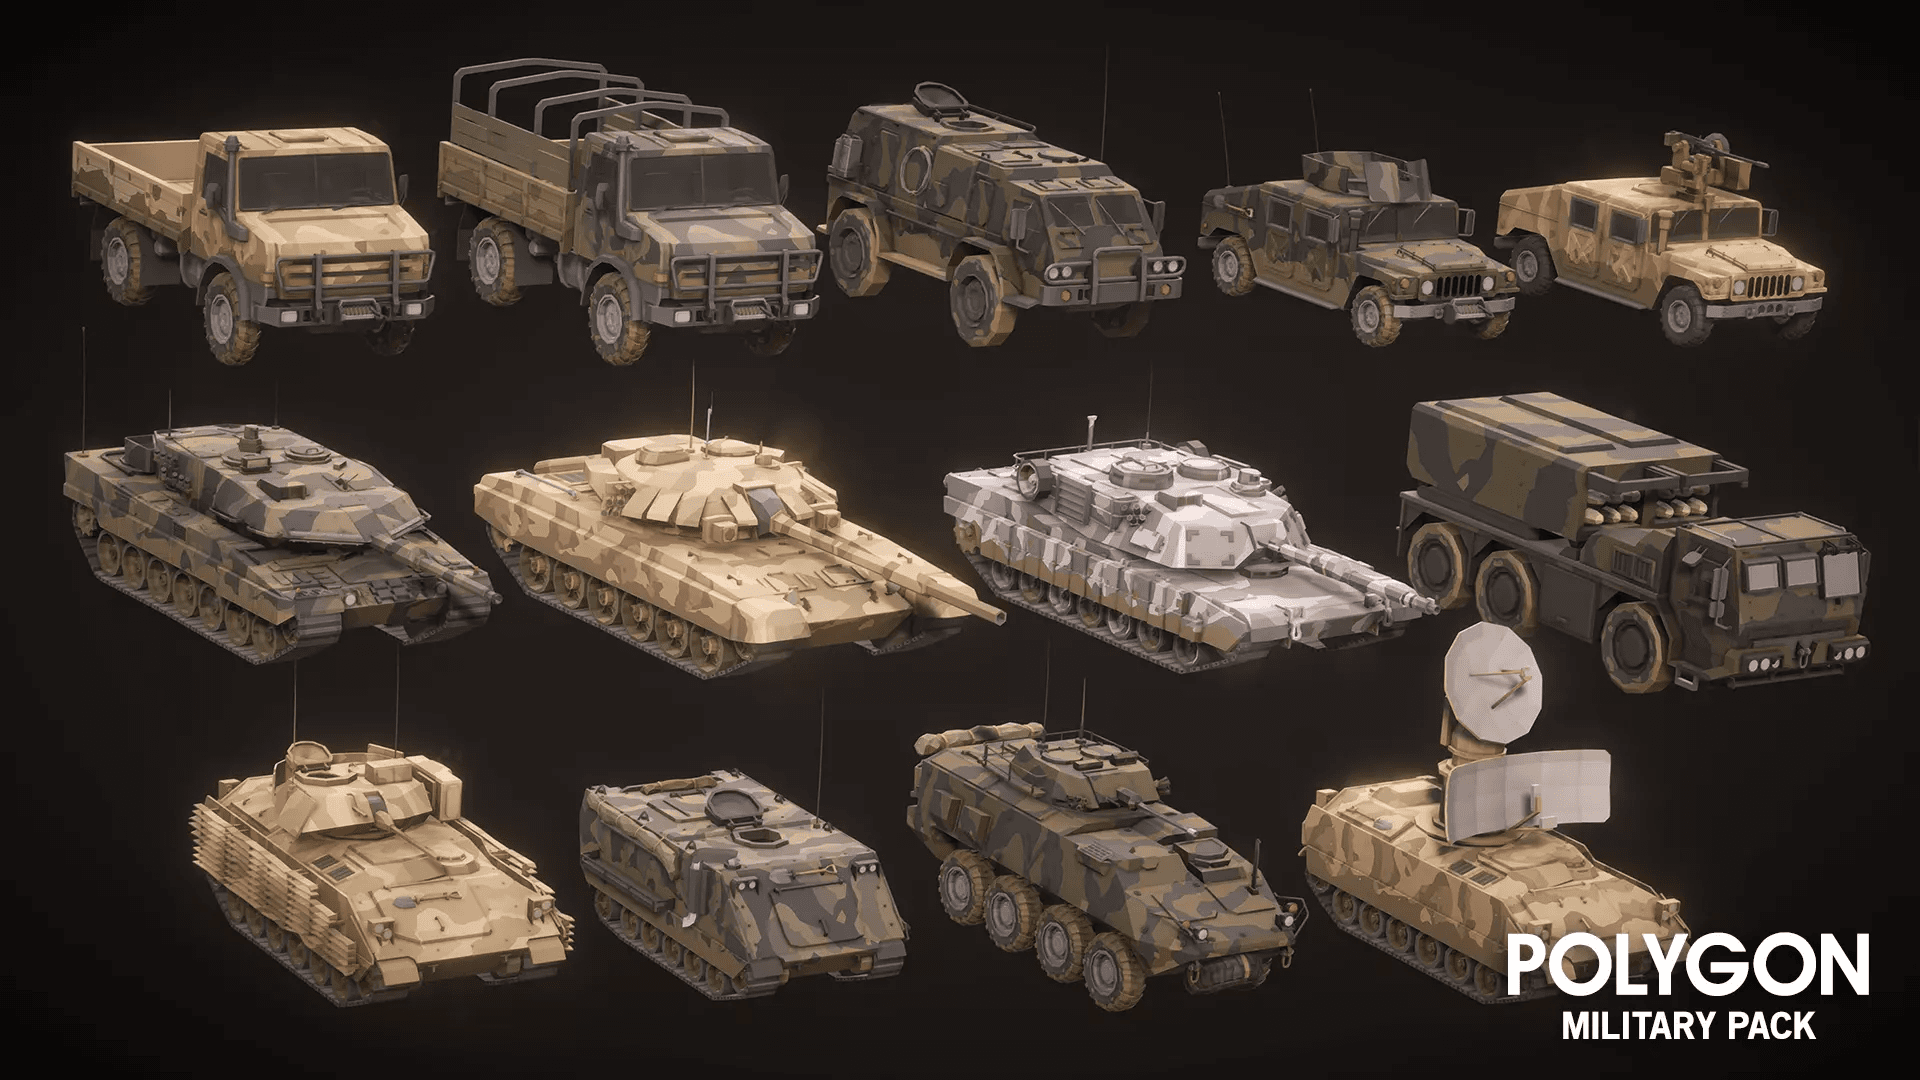 Low Poly Military Pack Humvee Tank APC Carriers Trucks